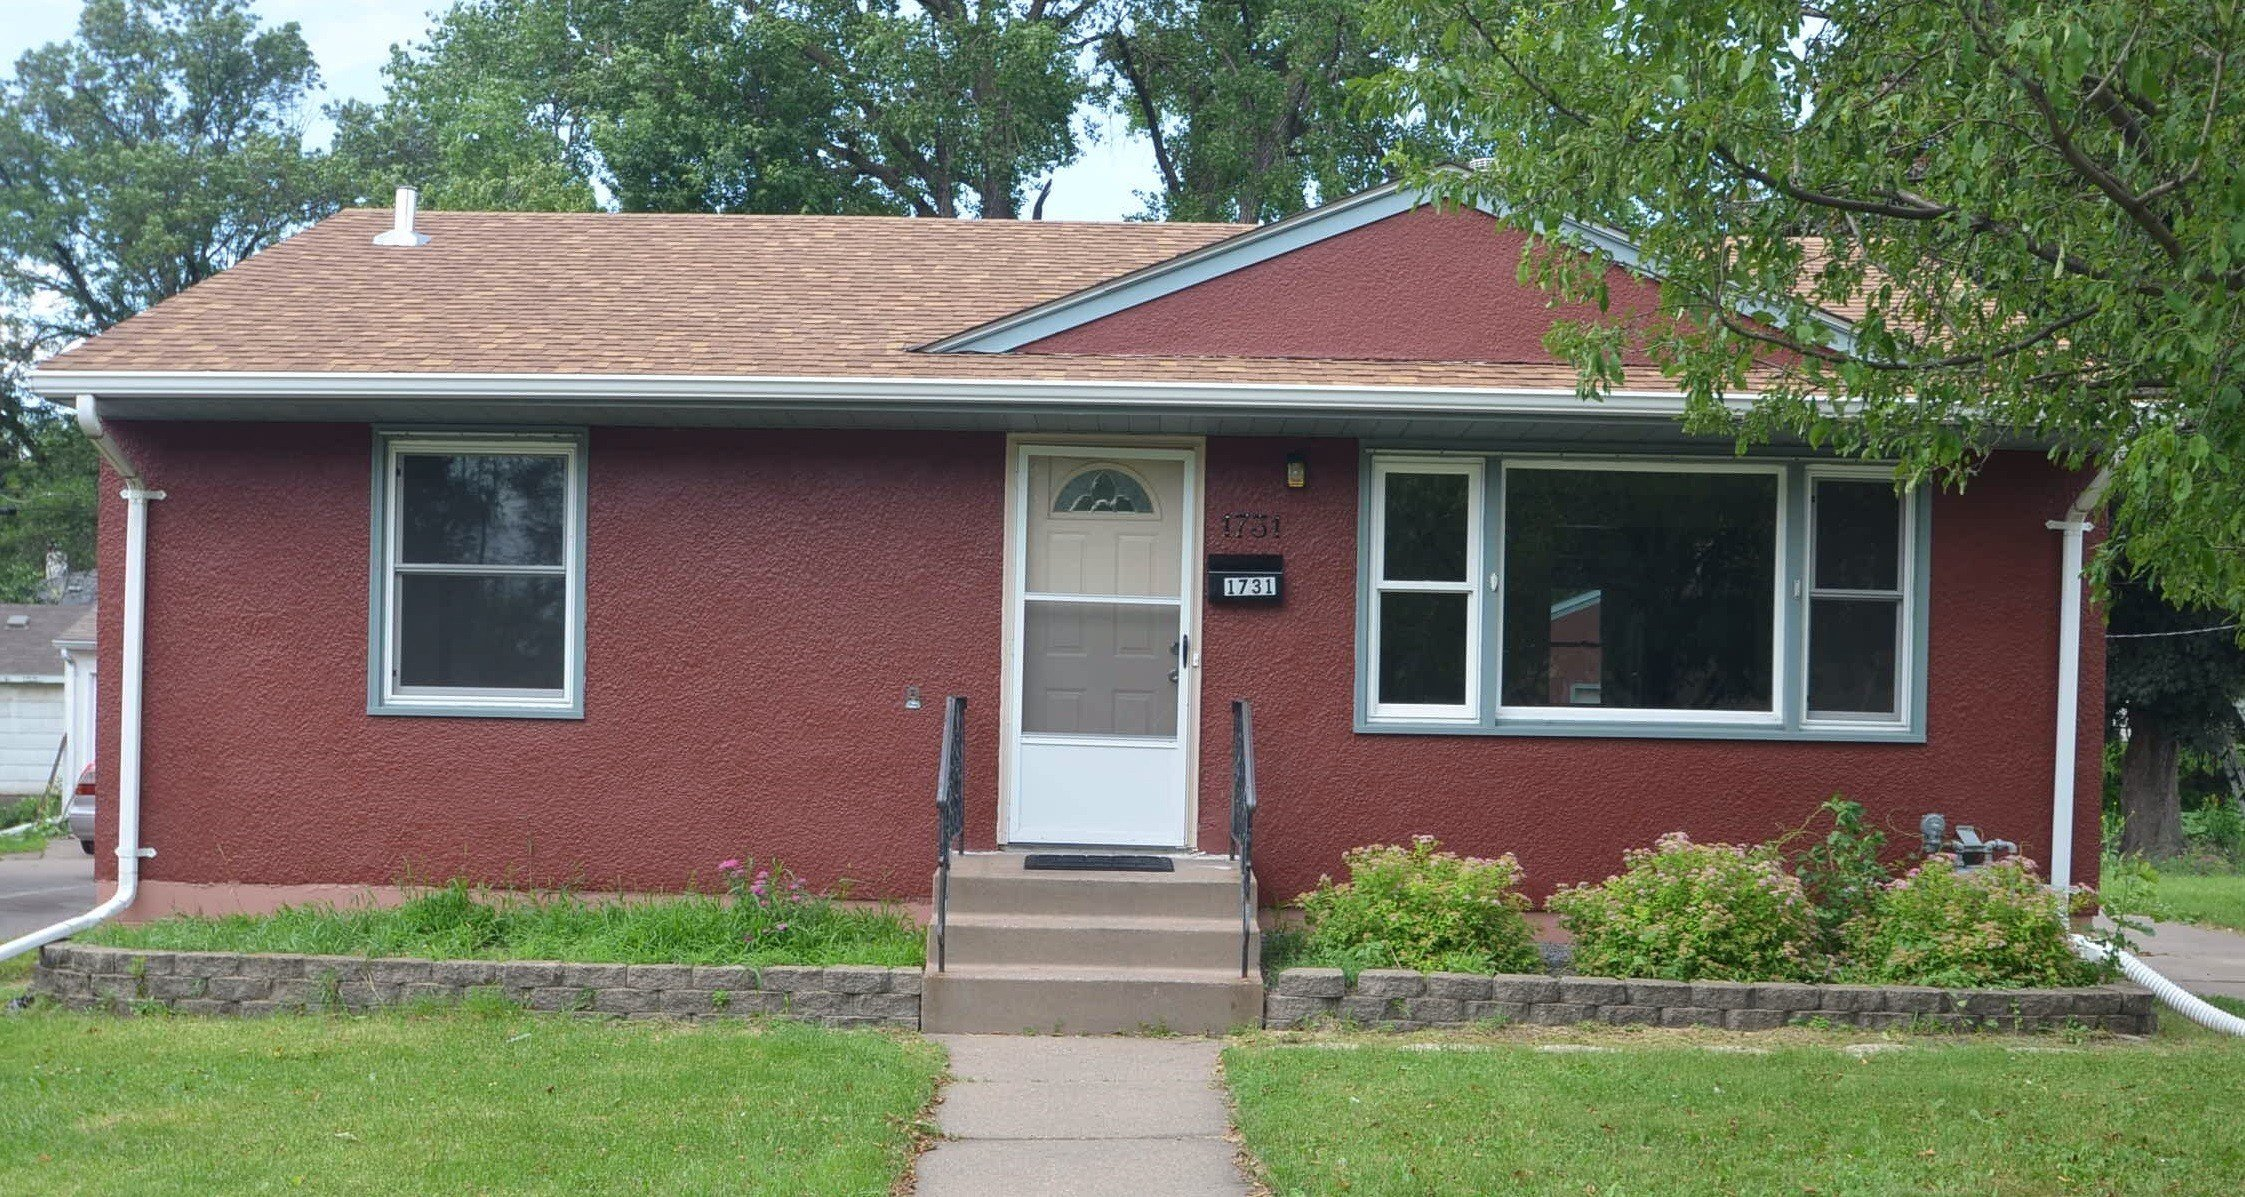 Best 1731 Idaho Ave E St Paul Mn 55106 4 Bedroom House For With Pictures